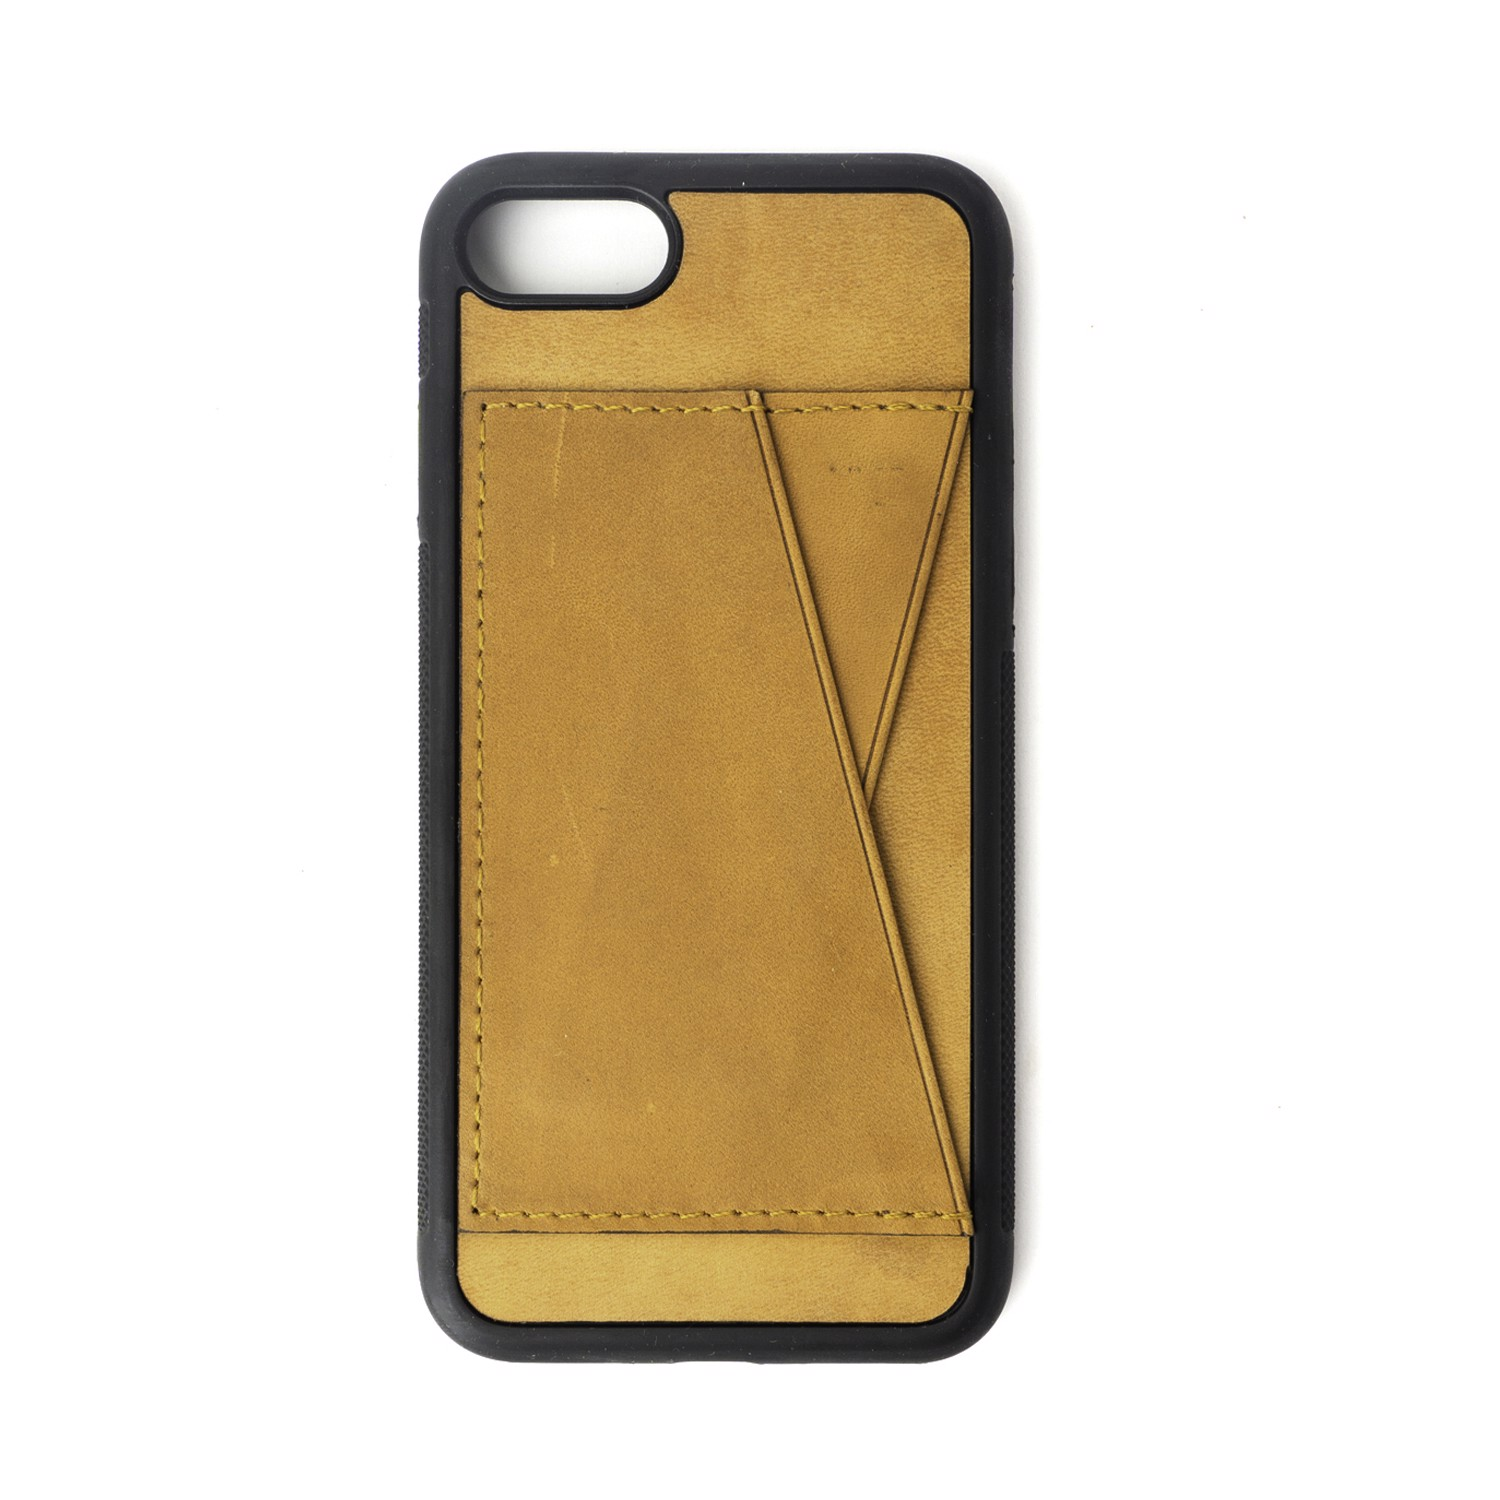 Ốp Da Điện Thoại Đựng Thẻ Chéo - Leather Iphone Case Card by Side